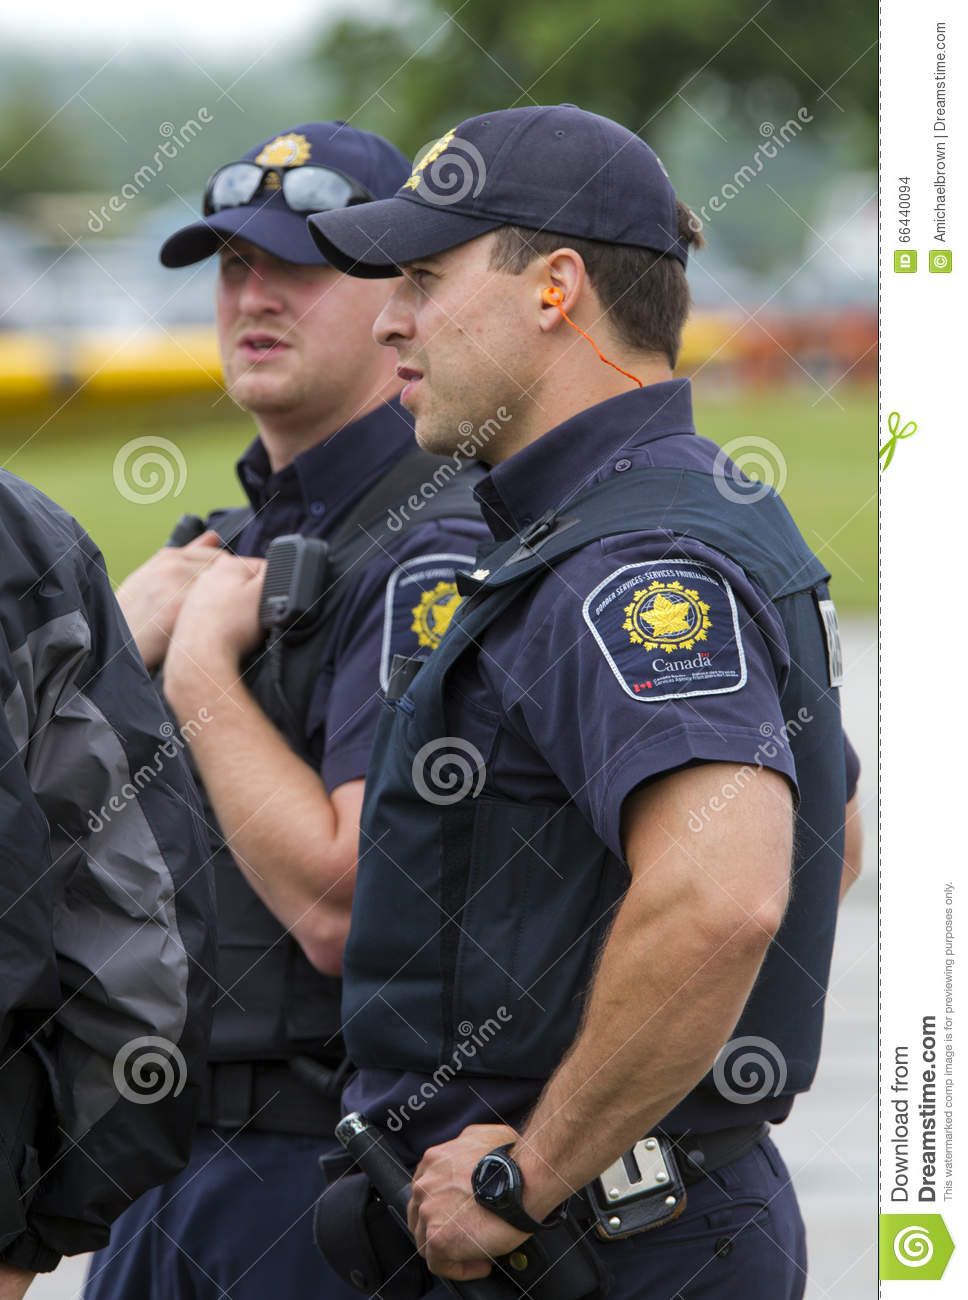 Personnel Security Services